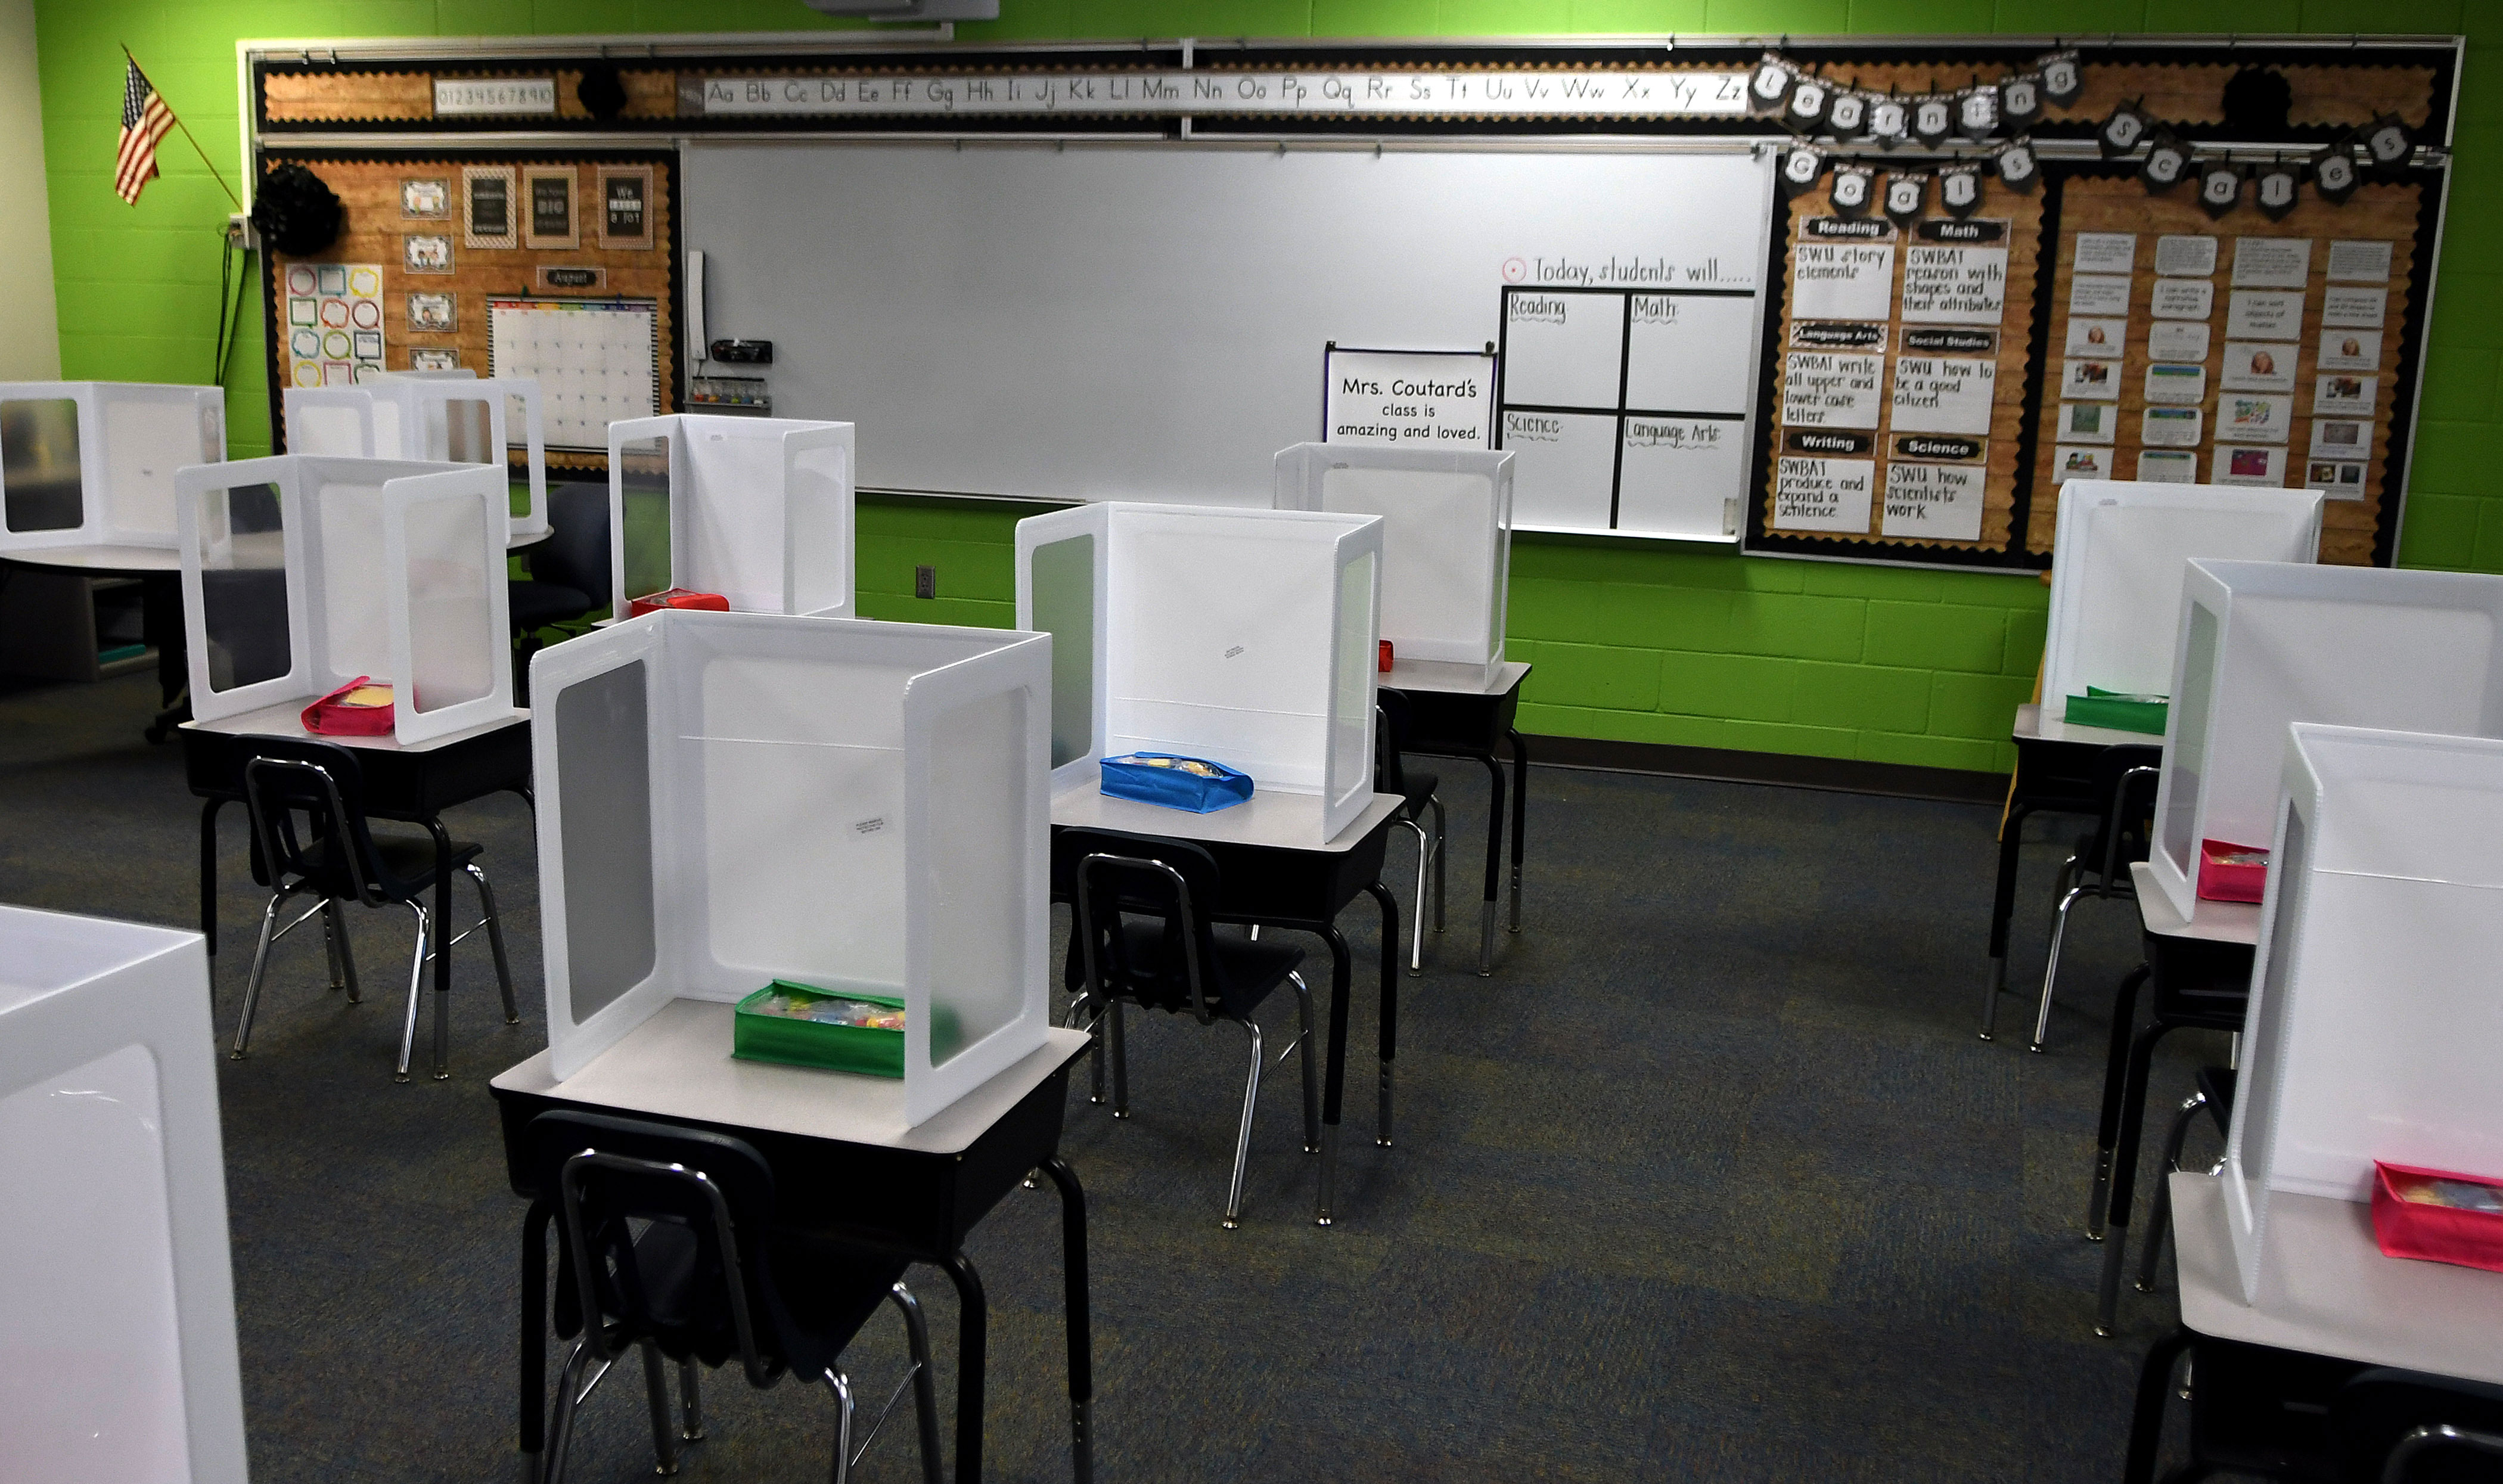 A classroom at Layer Elementary School in Winter Springs, Florida, is seen during a media preview on August 10, 2020.